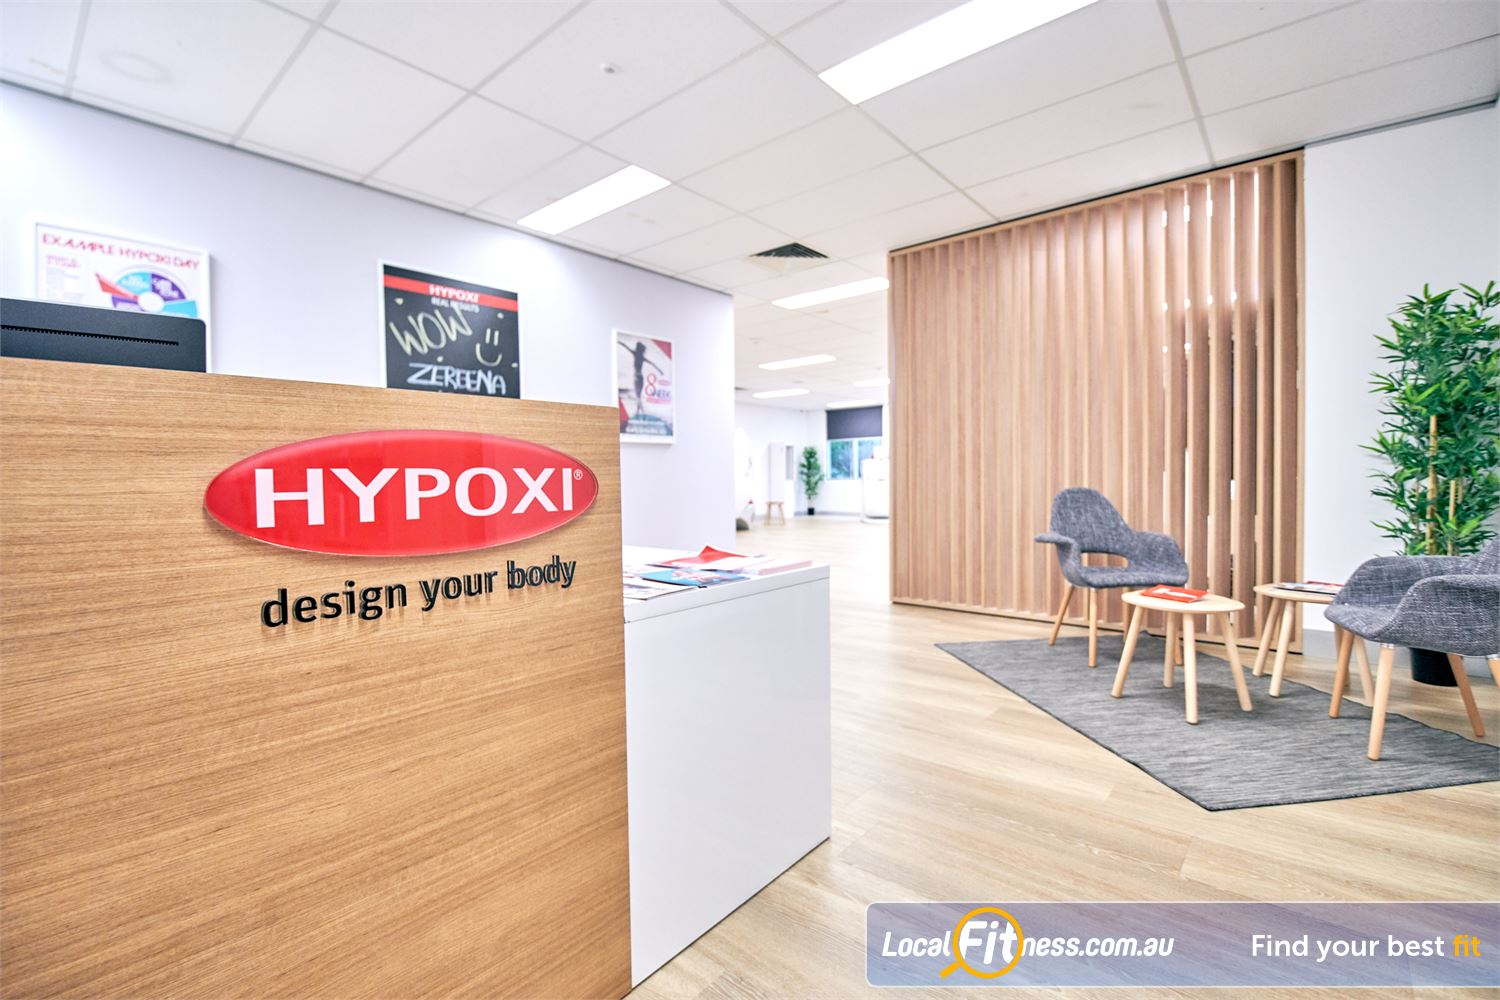 HYPOXI Weight Loss Near Camperdown Our team will sit with you and explain our Nutritional Portal MyHYPOXI.